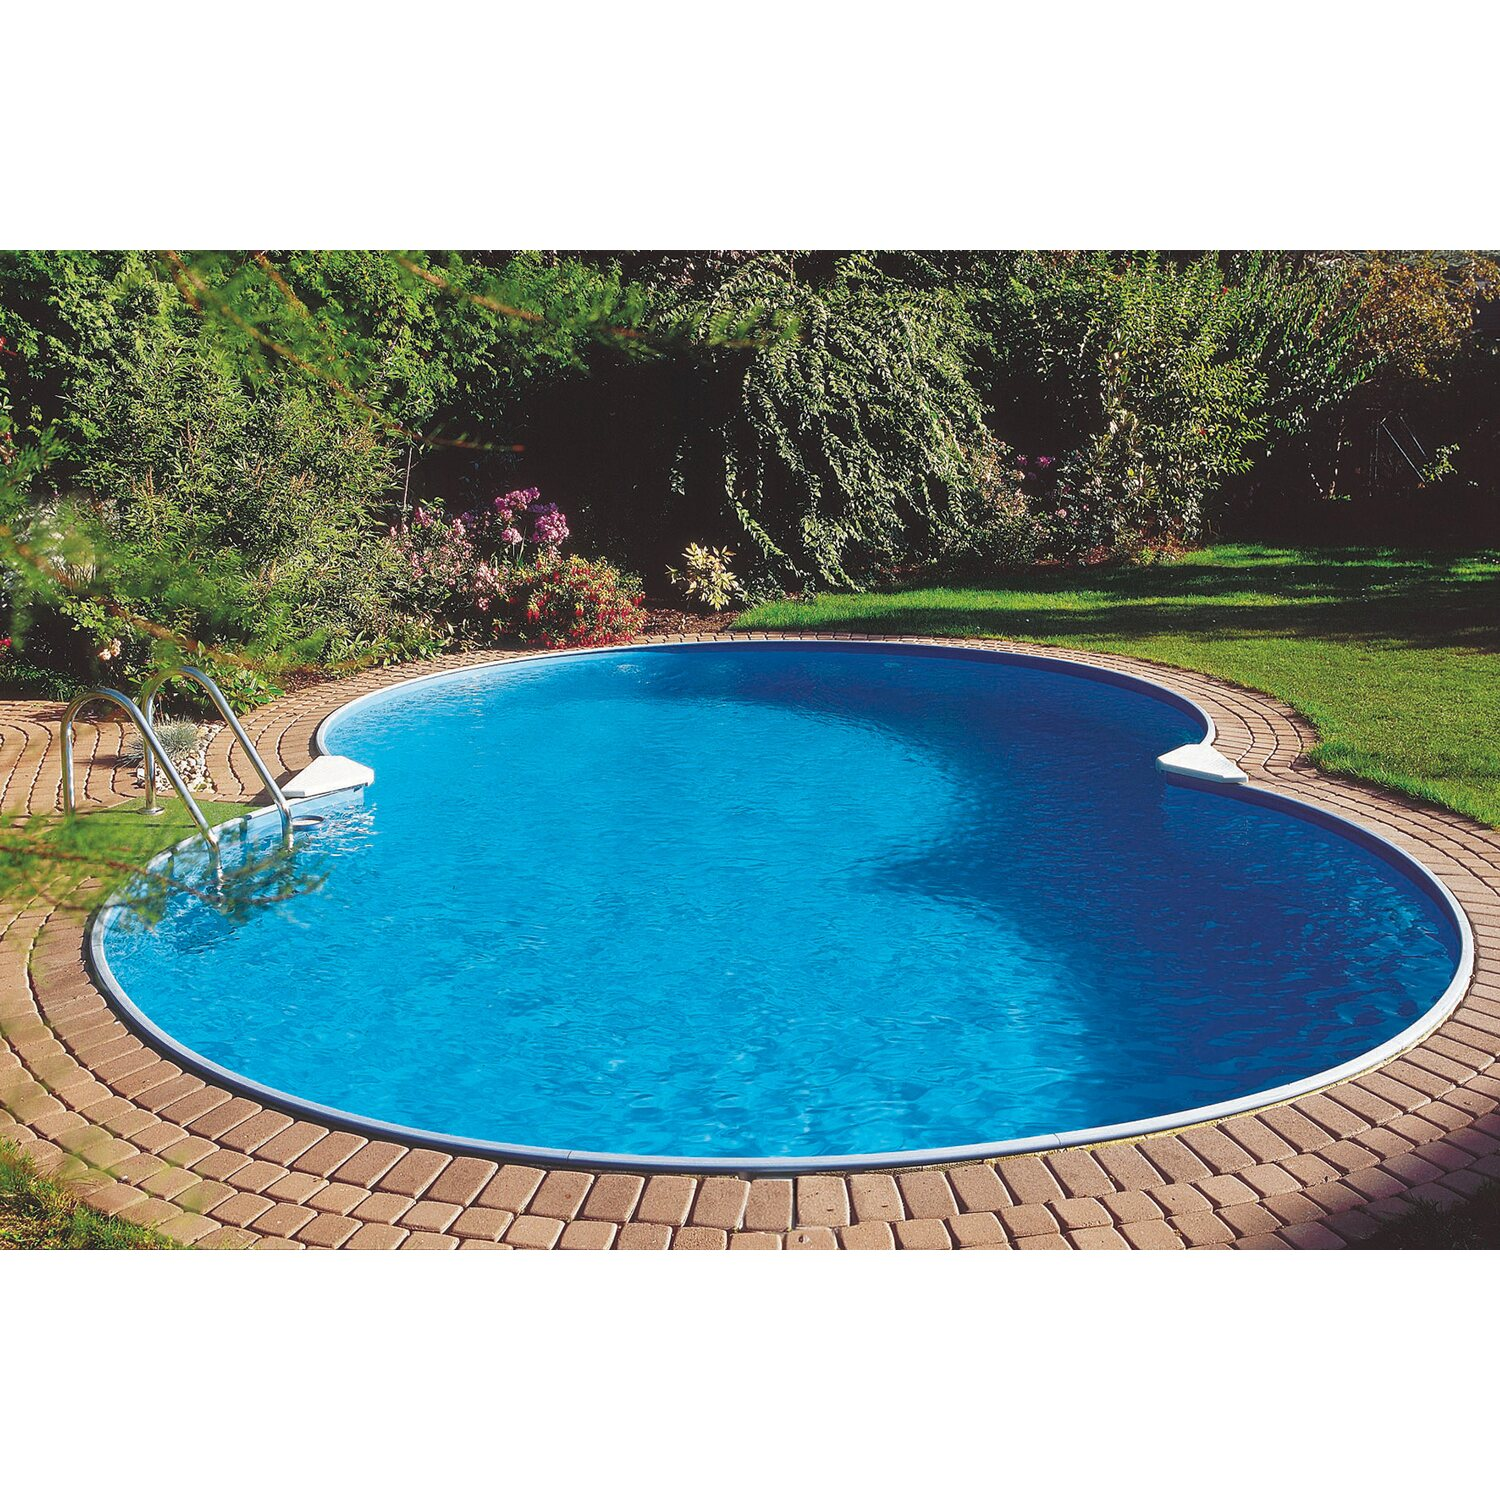 Stahlwand pool set colorado einbaubecken achtform 625 cm x for Pool stahlwand